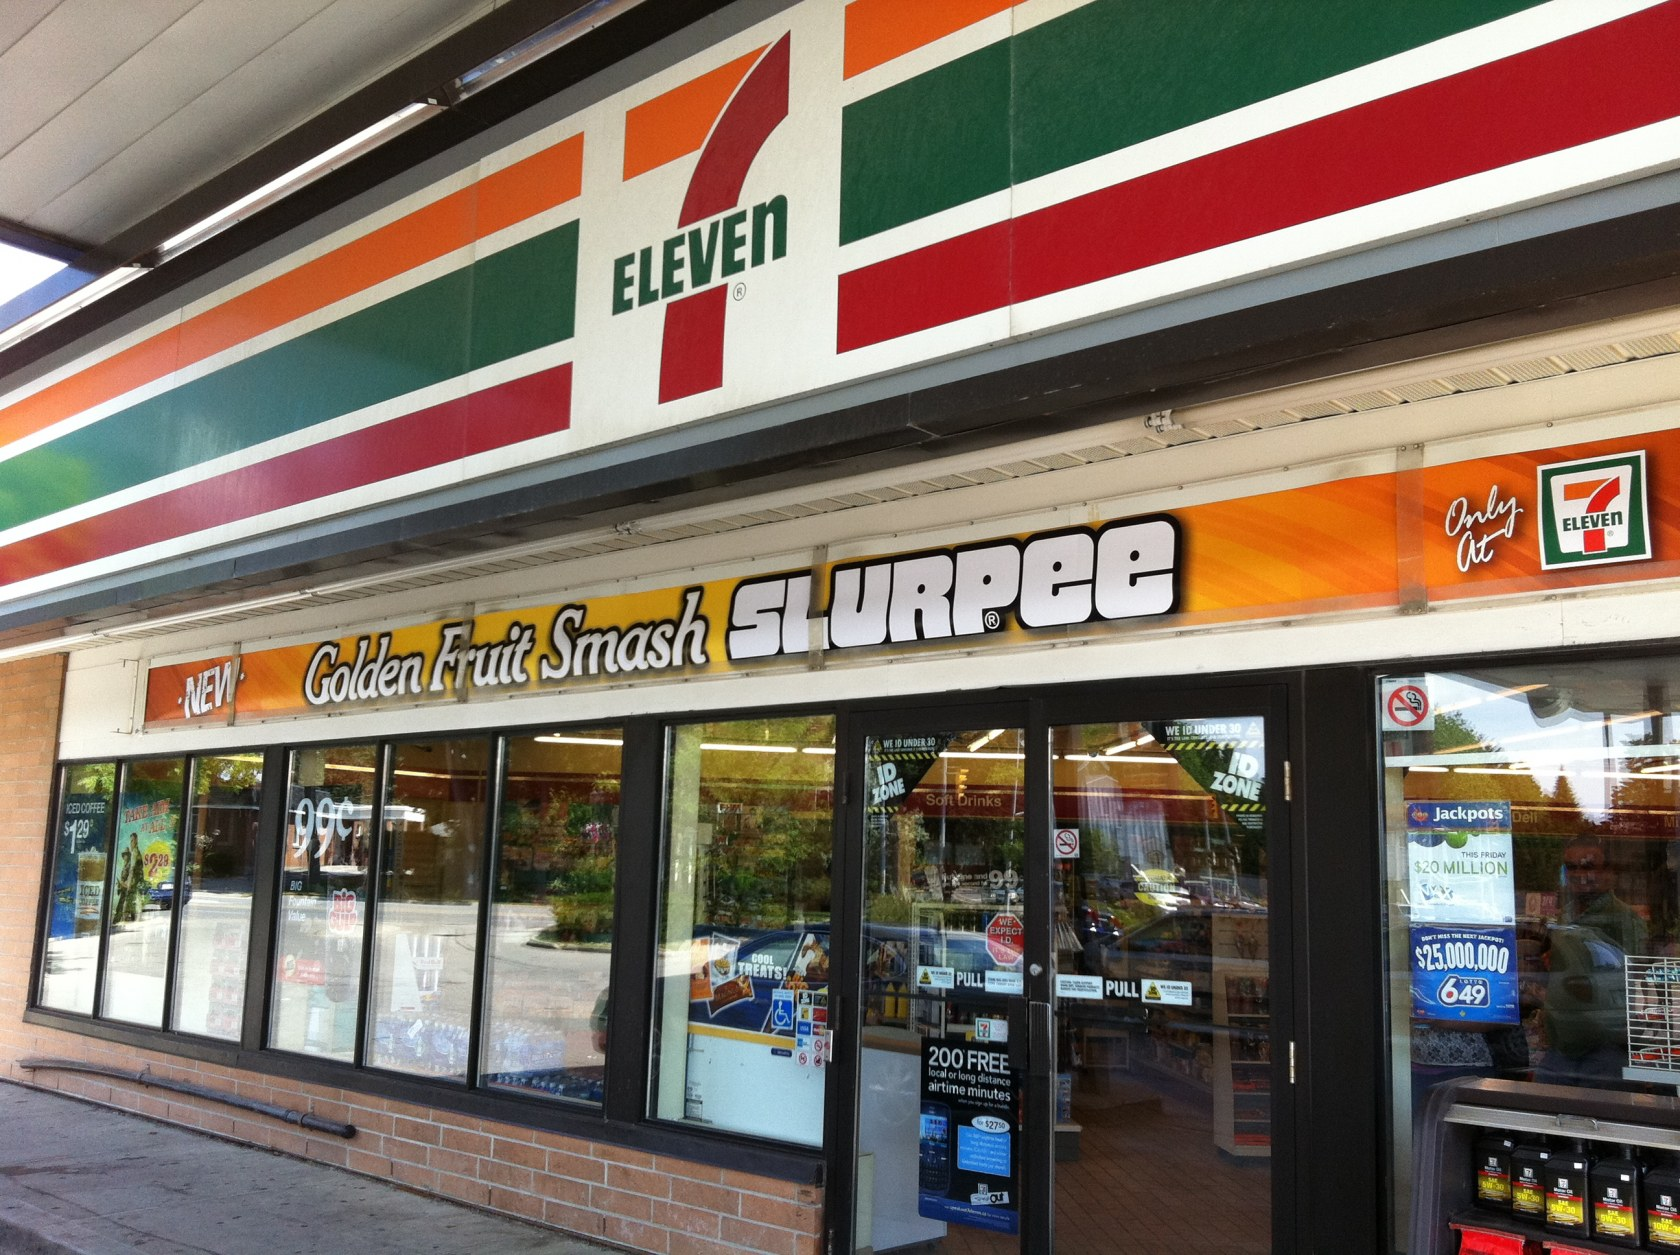 7-Eleven Speeds Customers Through With Mobile App